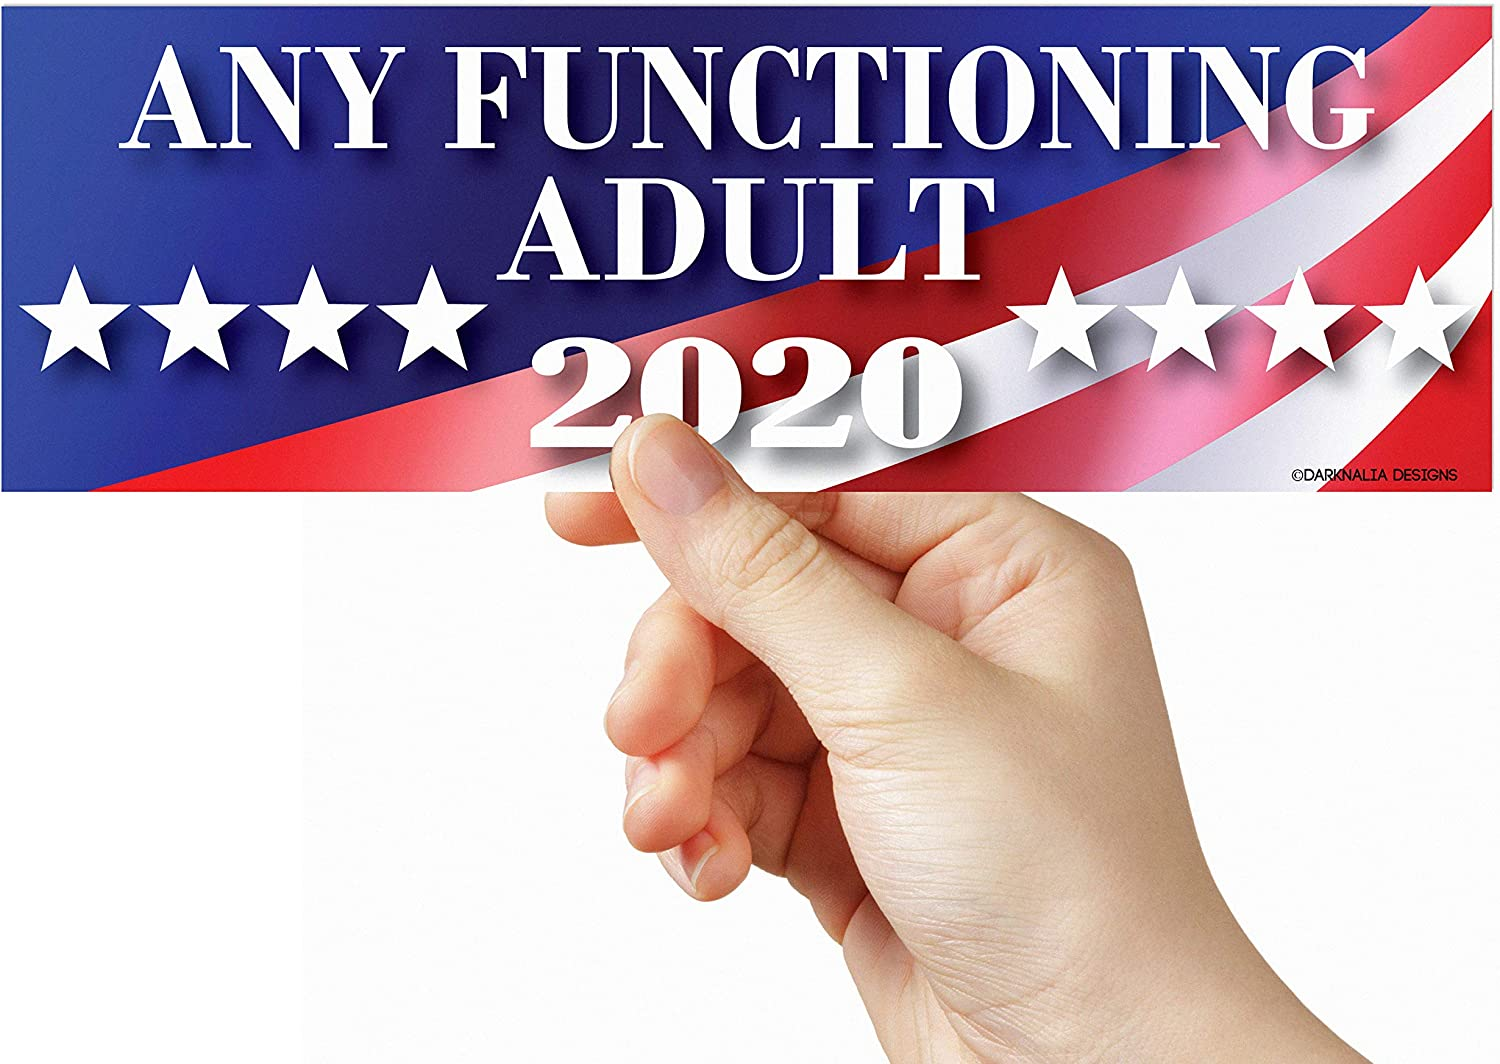 3 PACK Any Functioning Adult 2020 Funny Bumper Sticker 3 x 9 Car Truck Vinyl Decal Political Presidential Election Made In USA